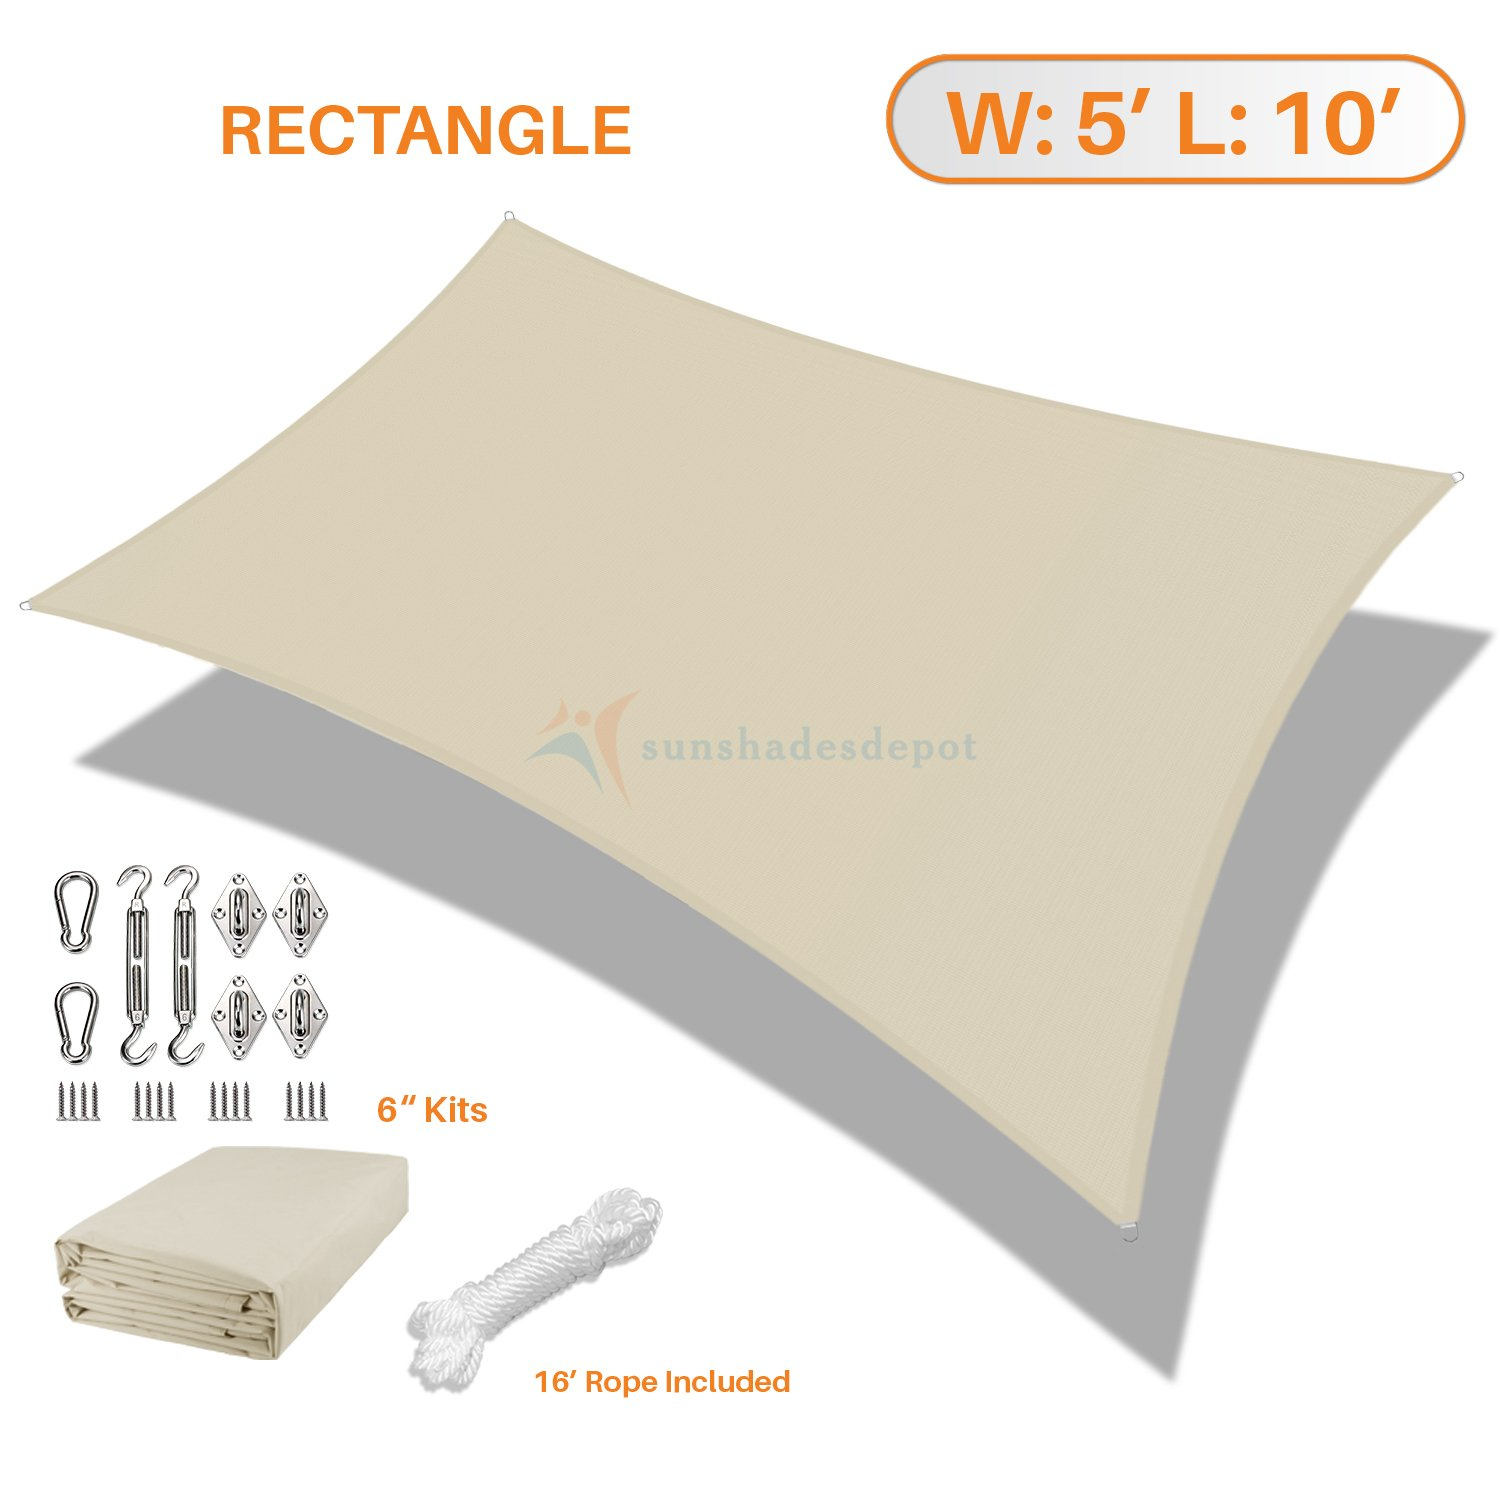 Sunshades Depot 5'x10' Rectanlge Waterproof Knitted Shade Sail with 6 inch Hardware Kit Curved Edge Beige 220 GSM UV Block Pergola Carport Canopy Awning Customize Available